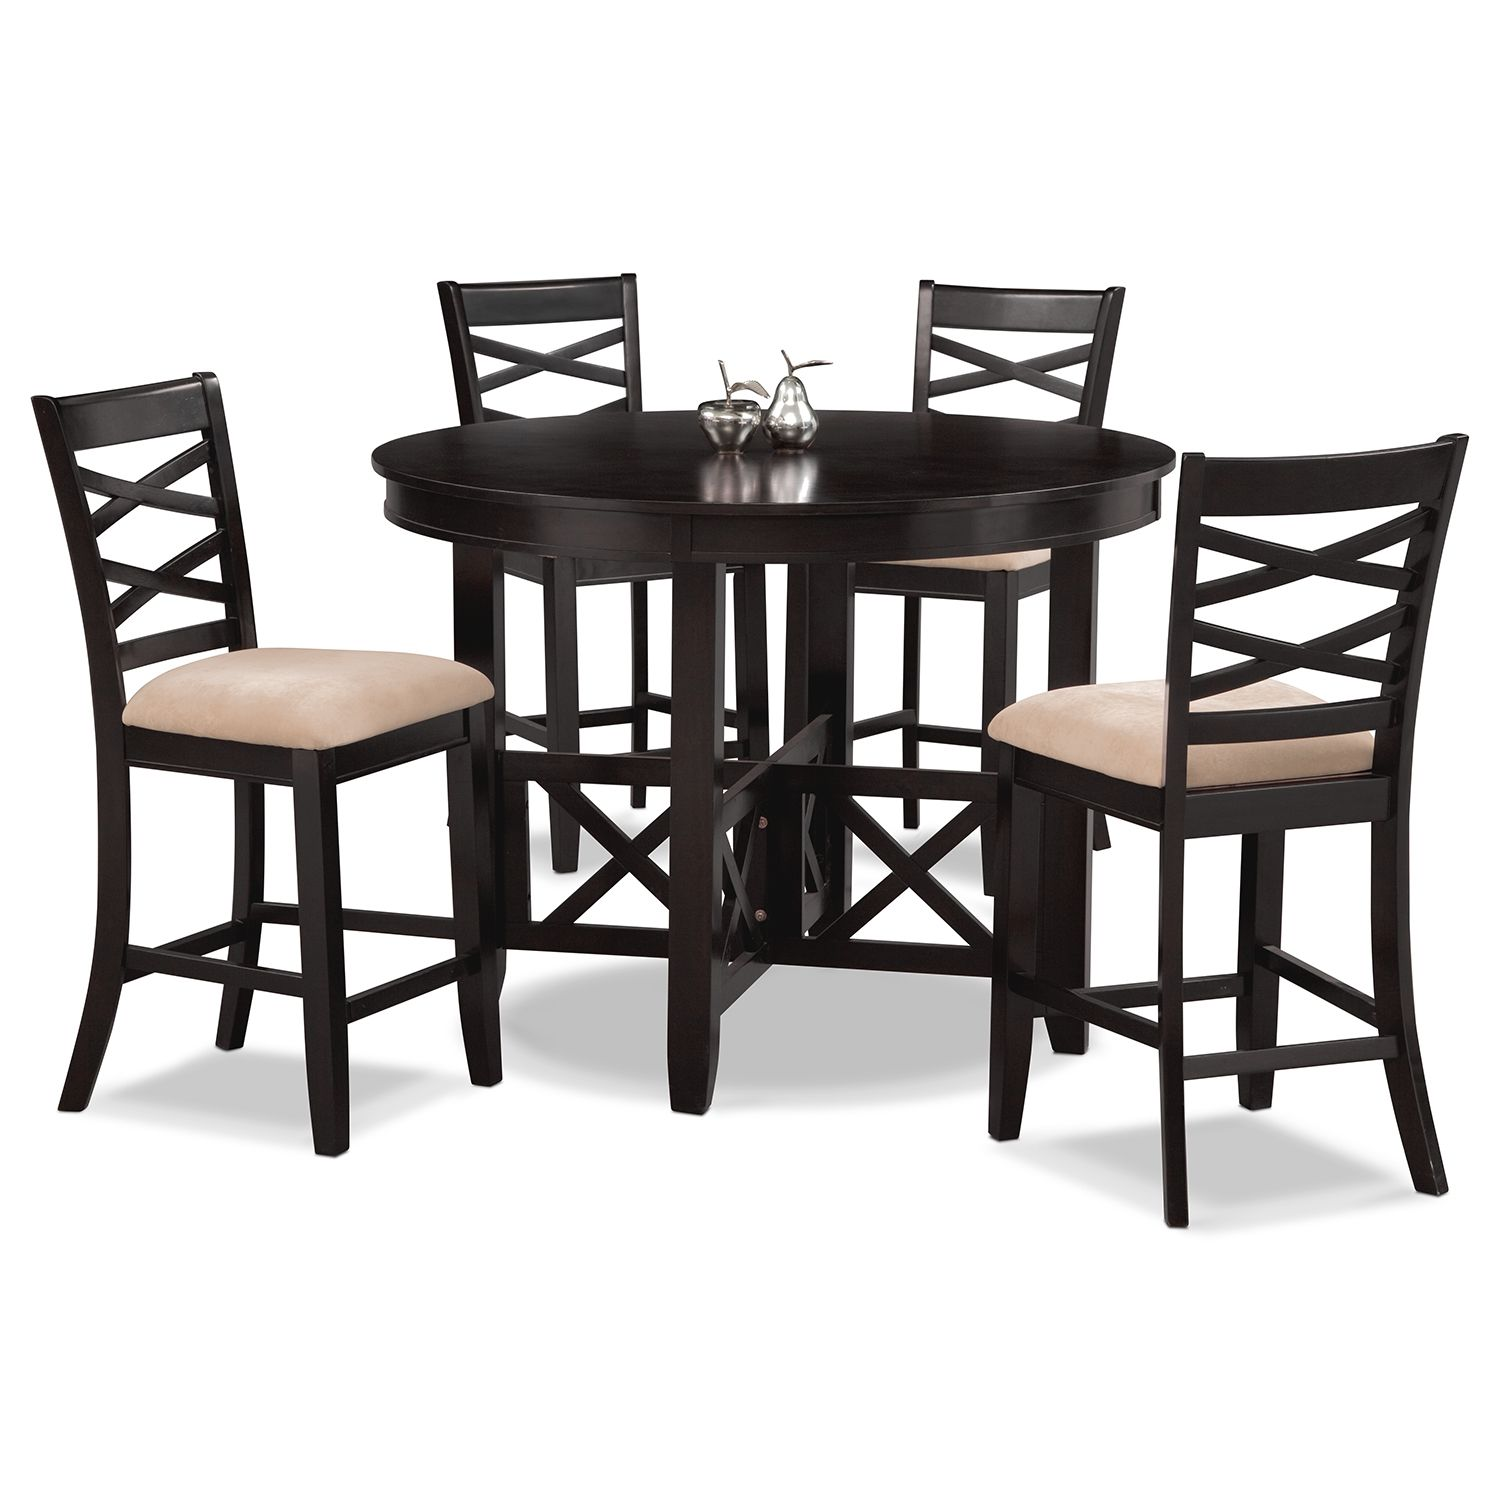 City Furniture Dining Room: Americana Espresso 5 Pc. Counter